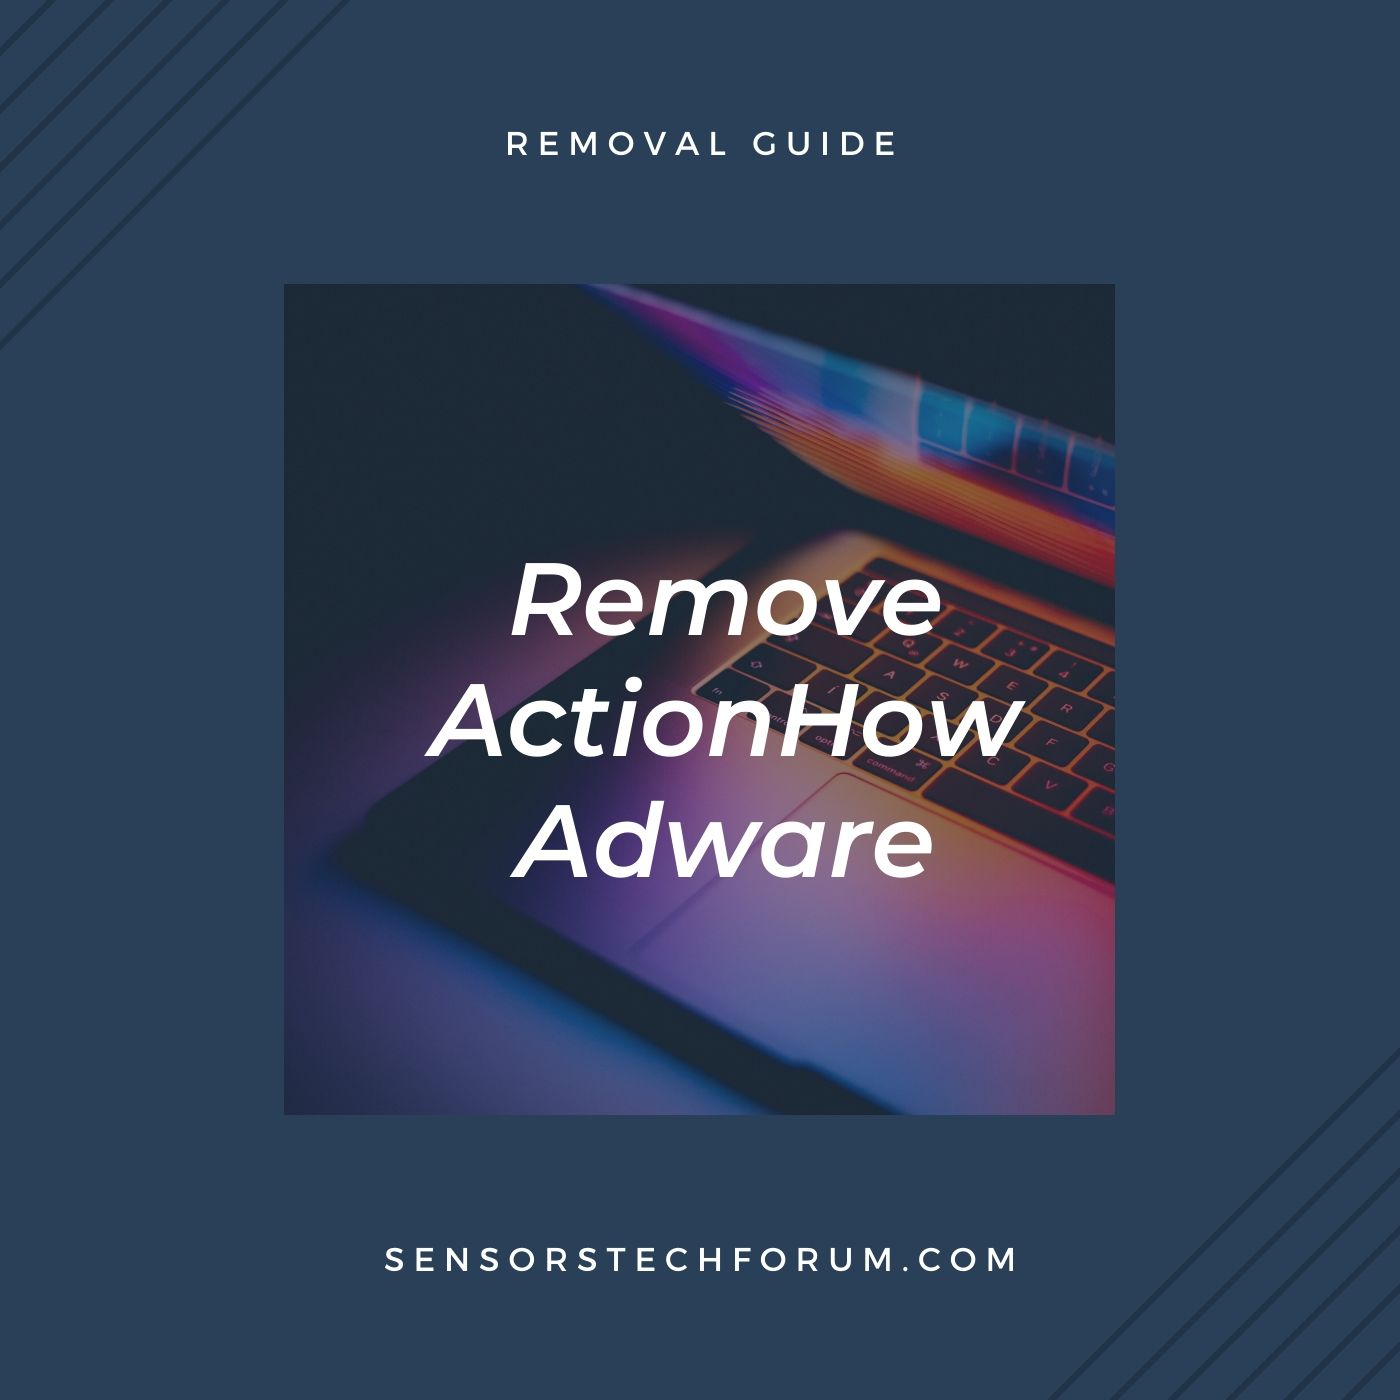 ActionHow mac virus removal guide